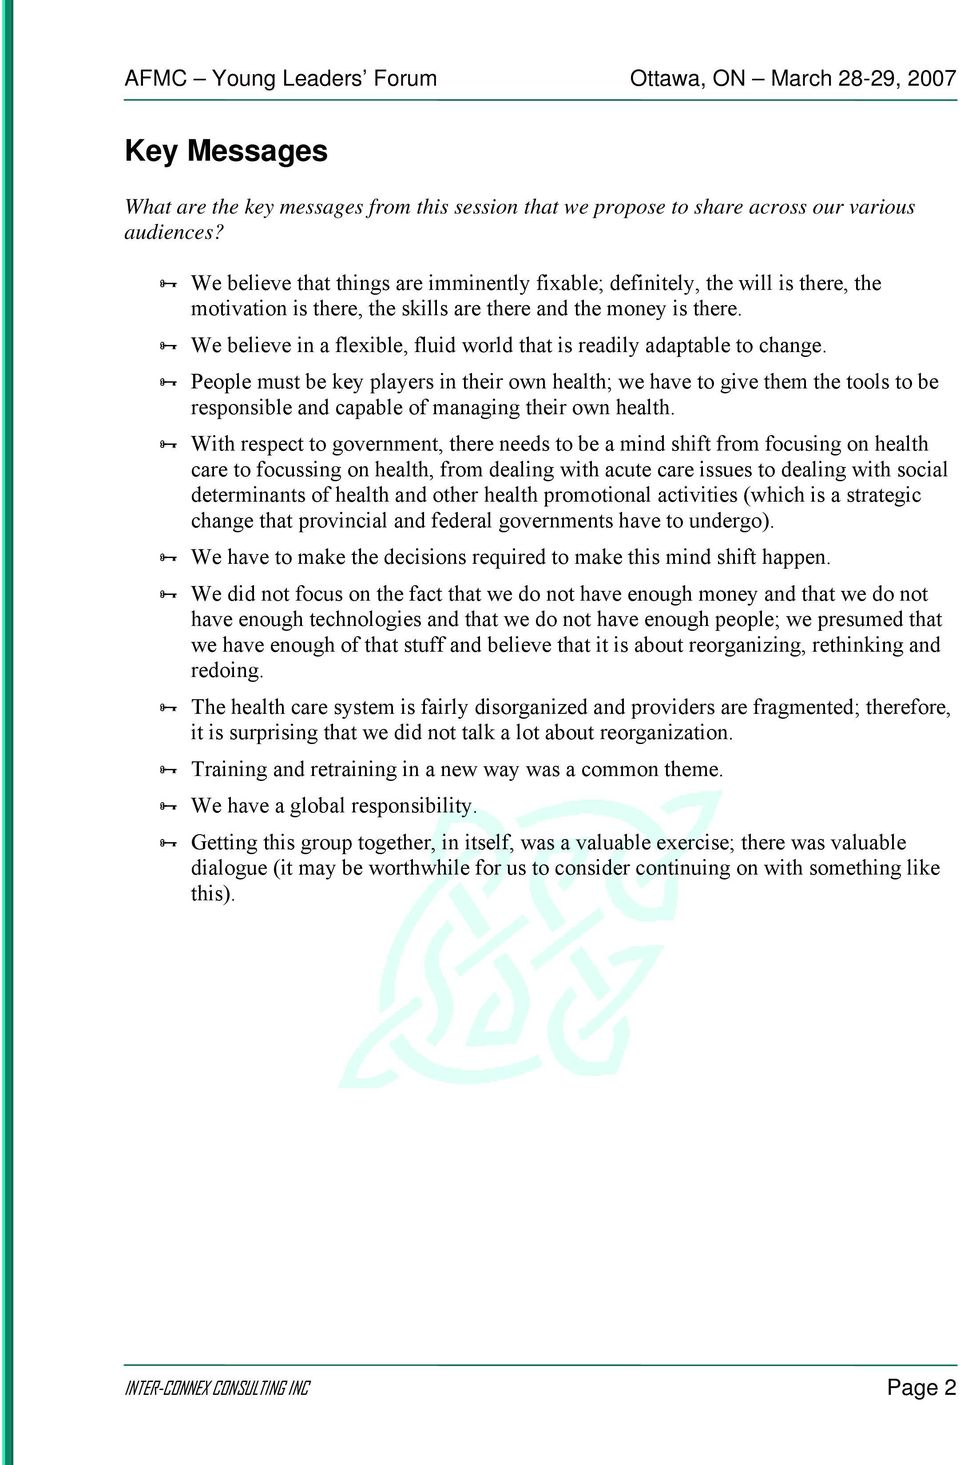 We believe in a flexible, fluid world that is readily adaptable to change.